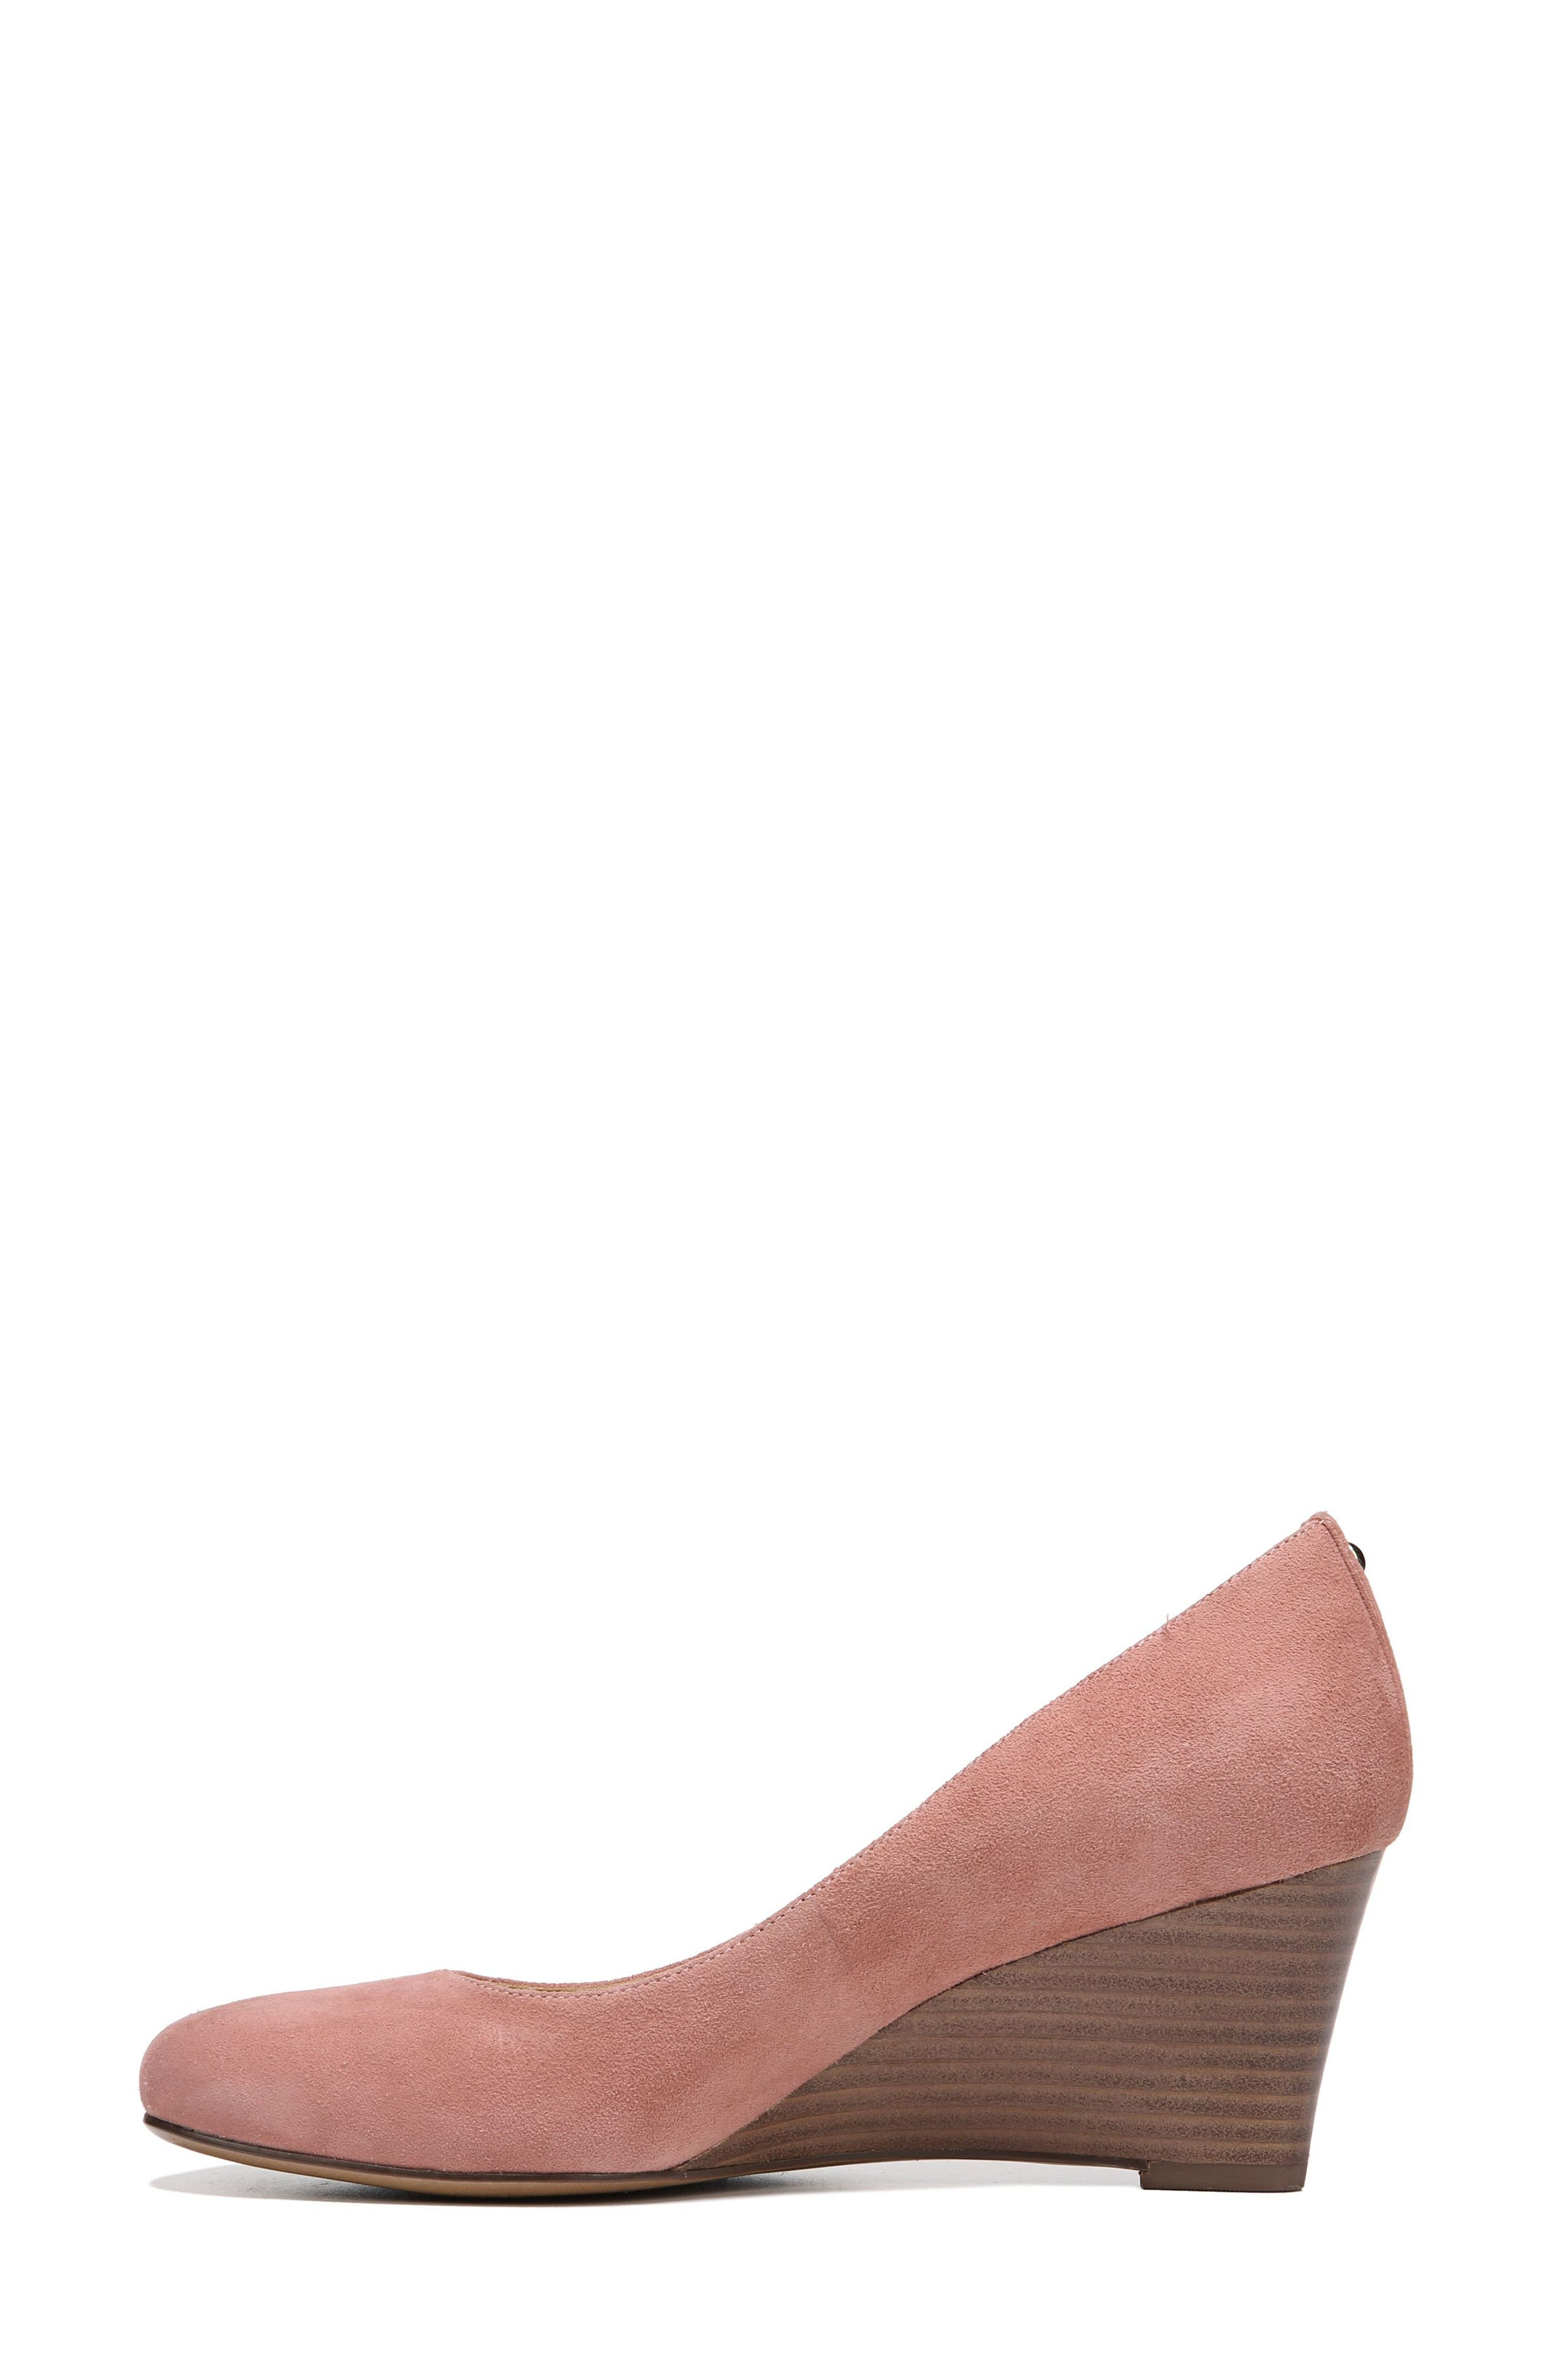 Emily Wedge Pump,                             Alternate thumbnail 4, color,                             Peony Pink Suede